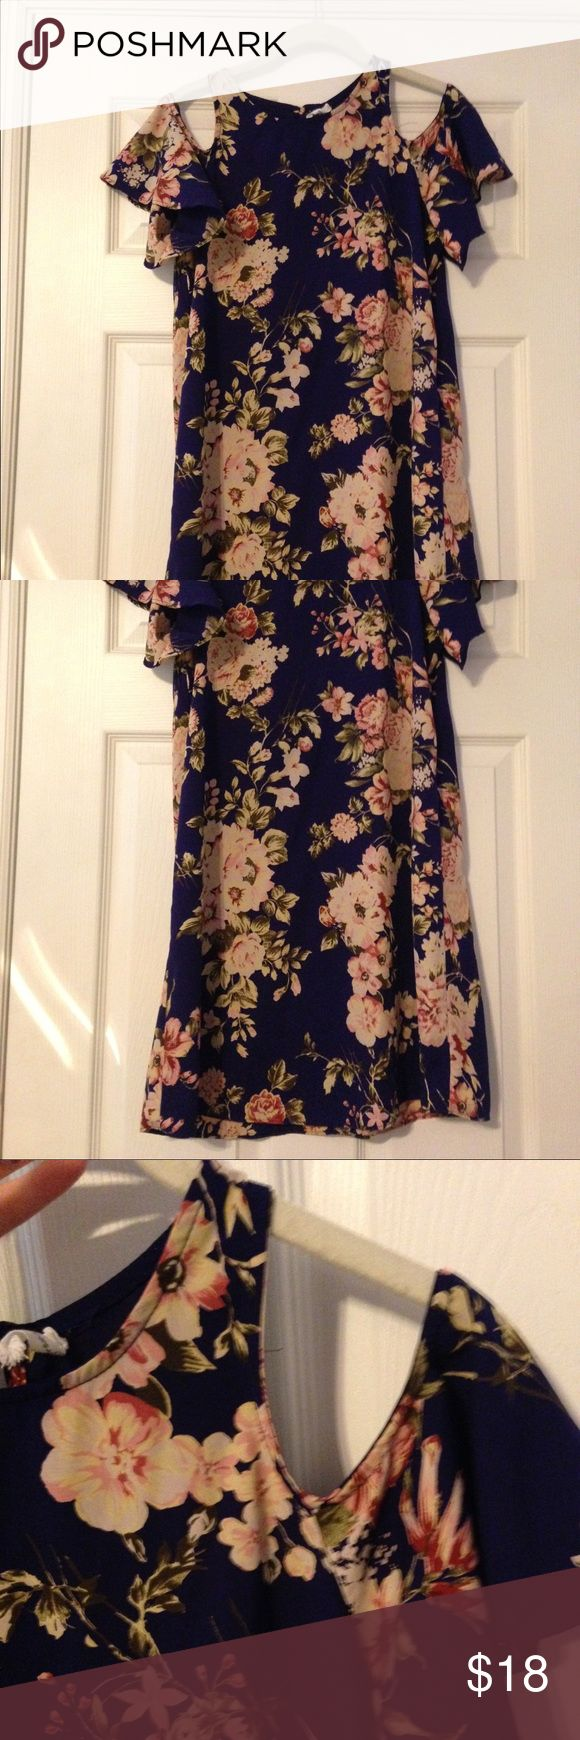 Nordstrom Navy cap sleeve dress xs From Nordstrom great condition Dresses Mini